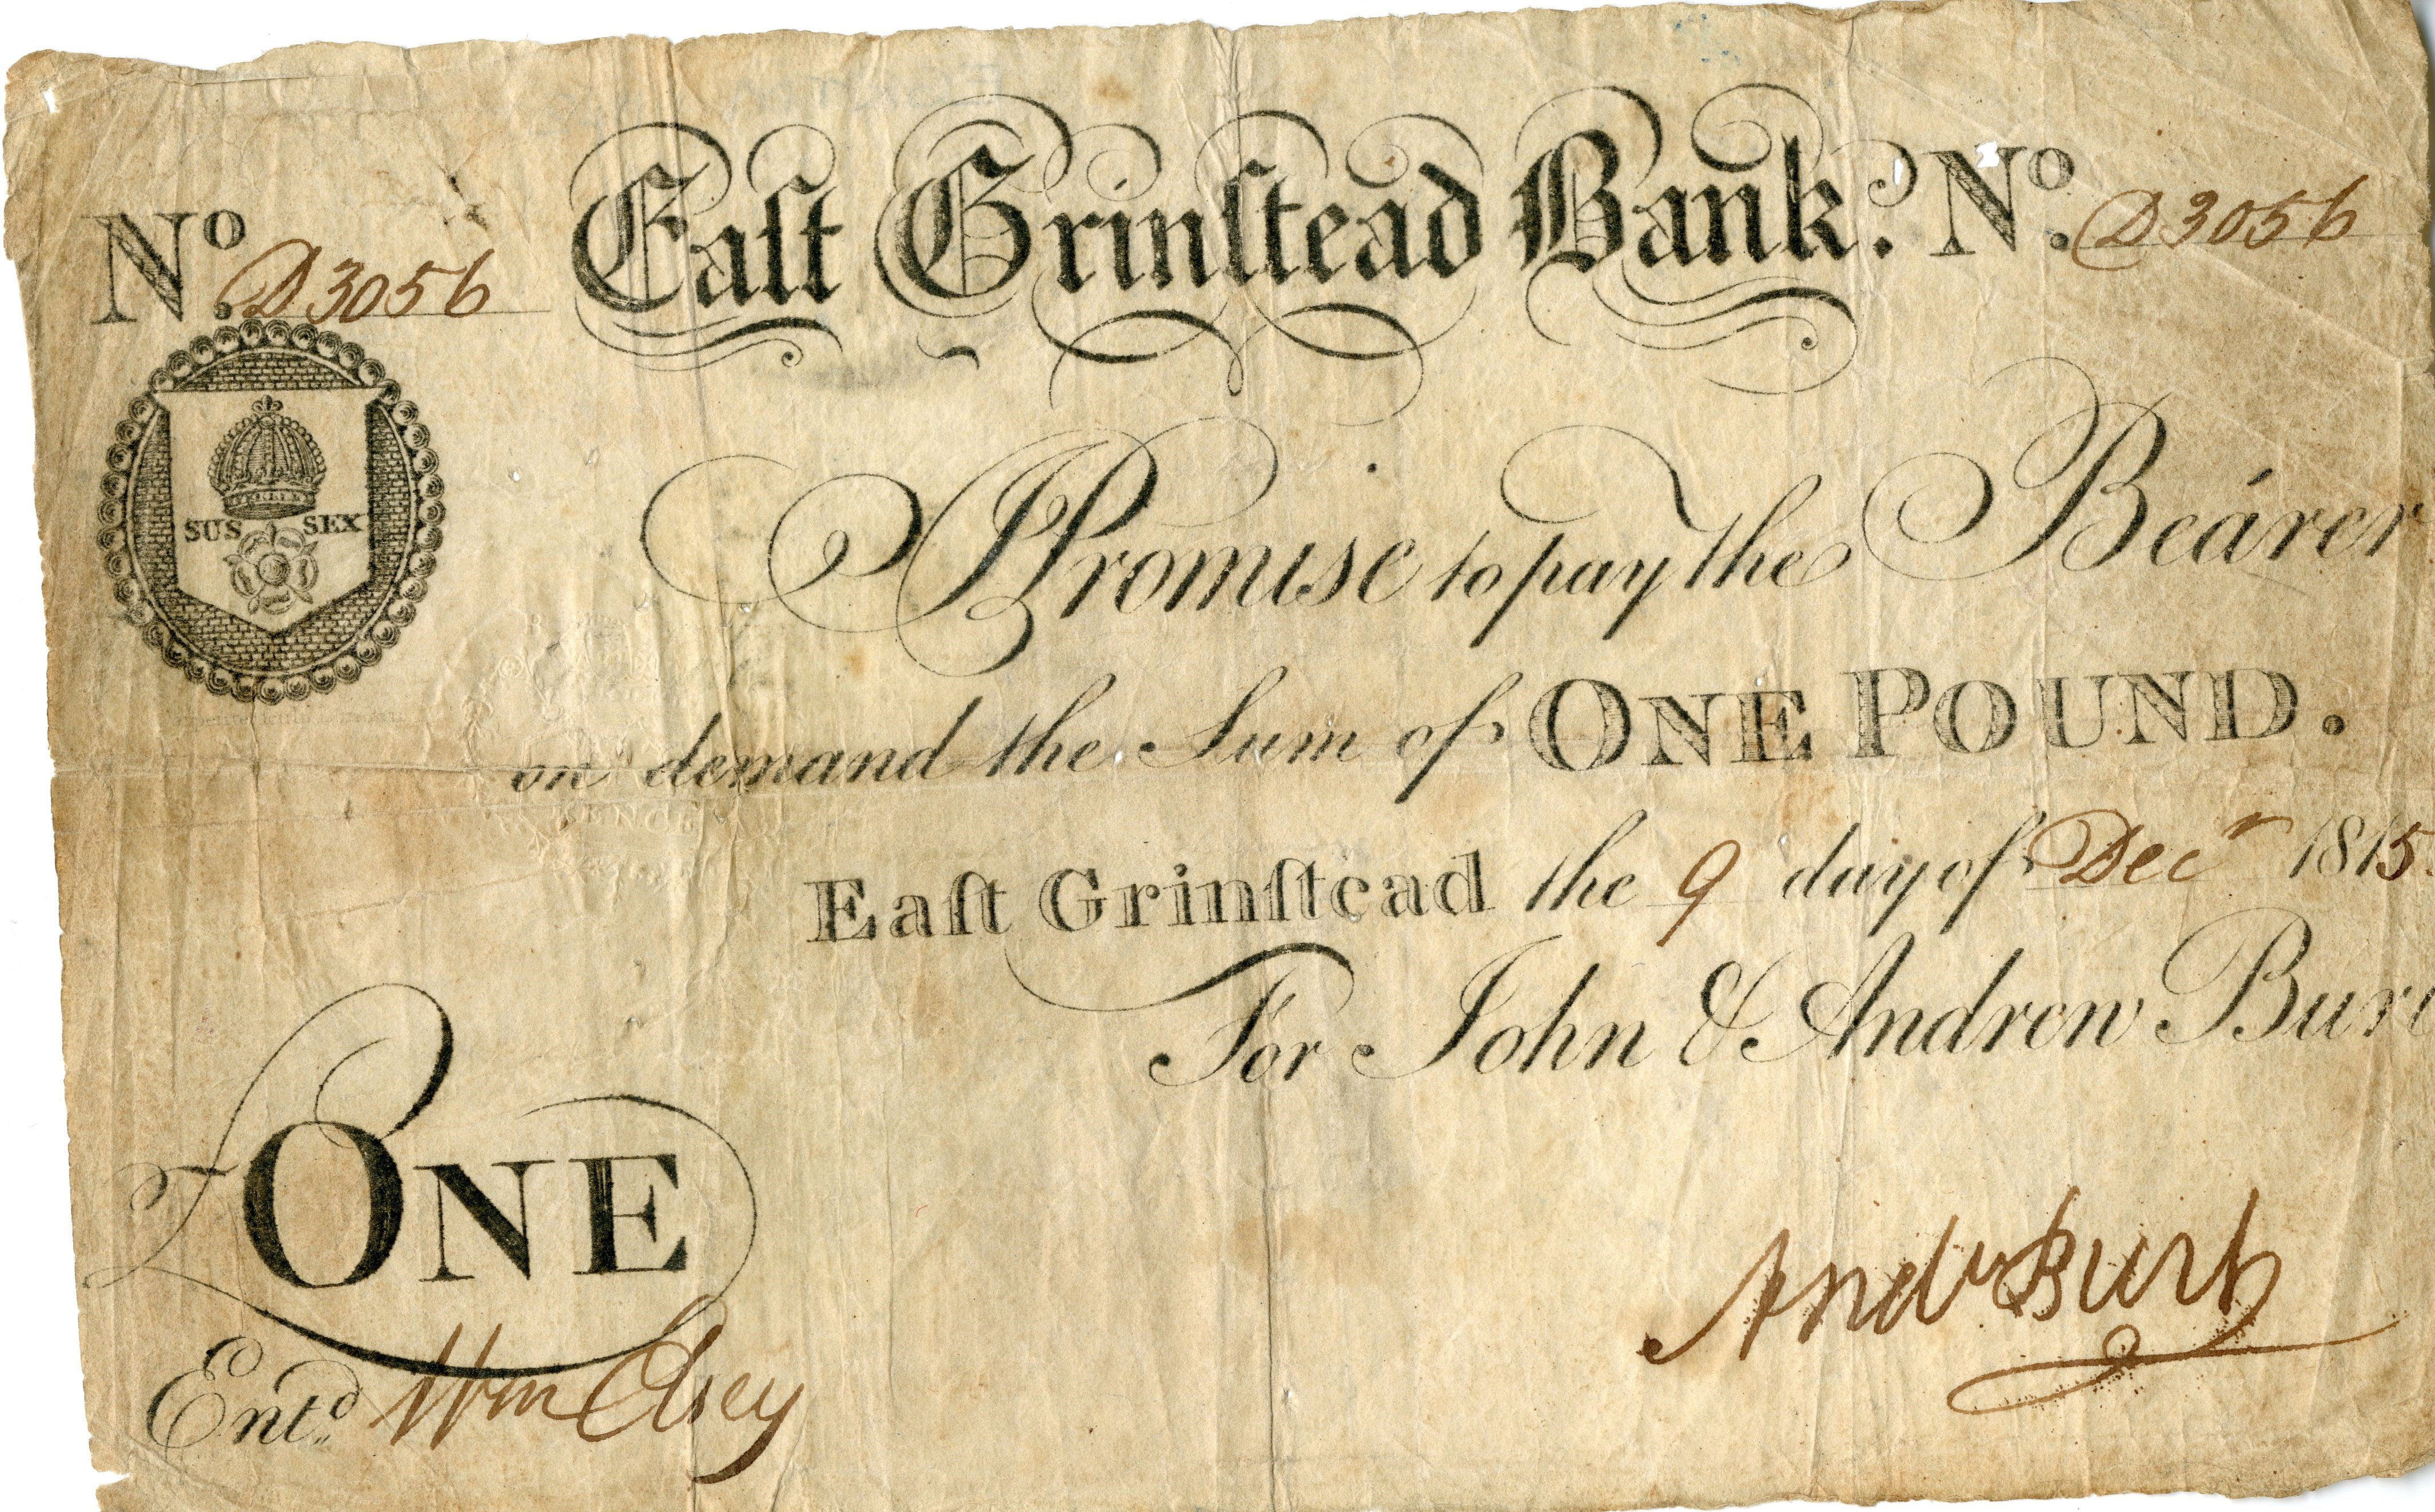 East Grinstead Museum – One Pound East Grinstead the 9th day of Dec 1815 For John & Andrew Burt